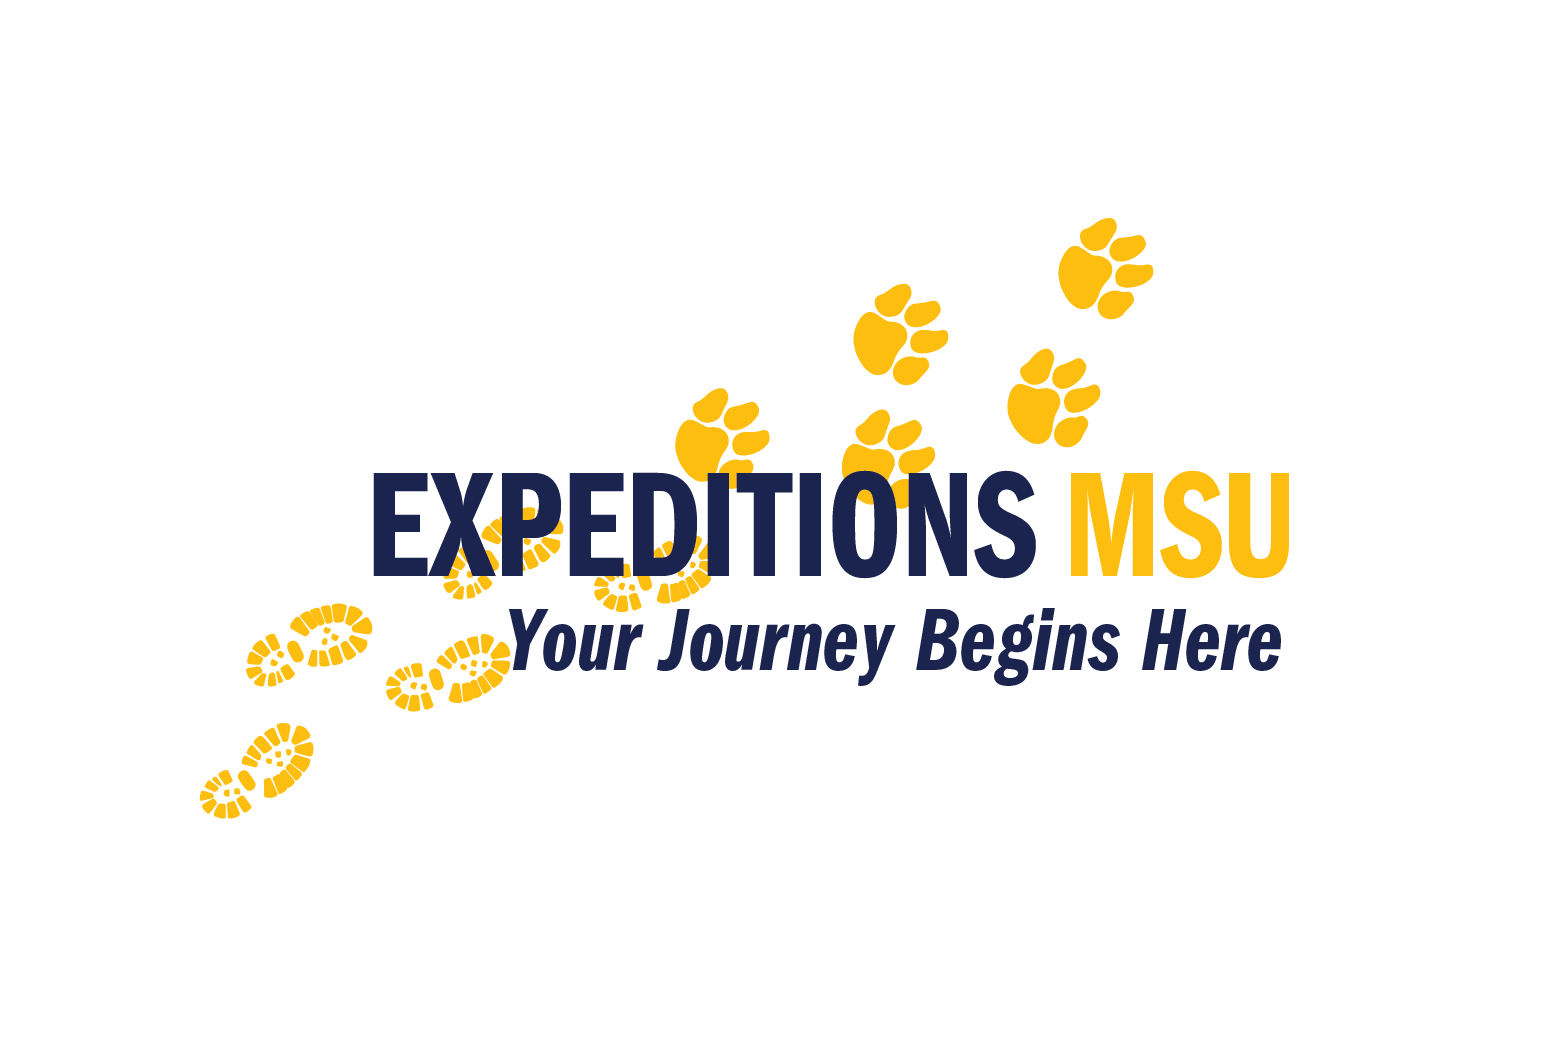 Logo for Expeditions MSU